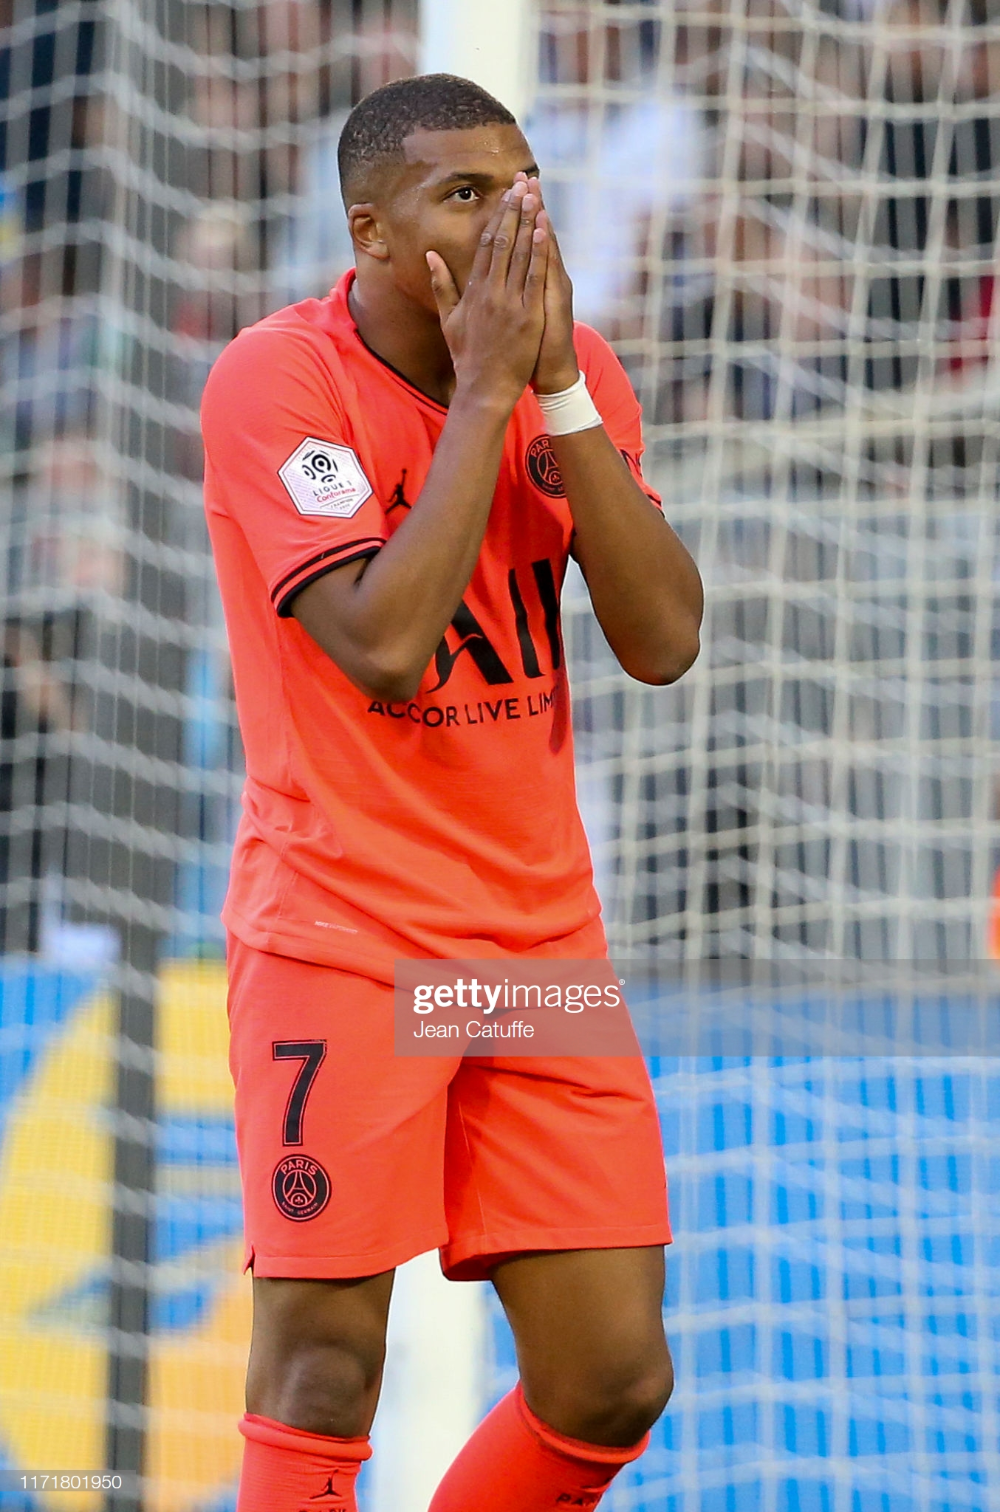 Kylian Mbappe of PSG reacts after missing a goal during